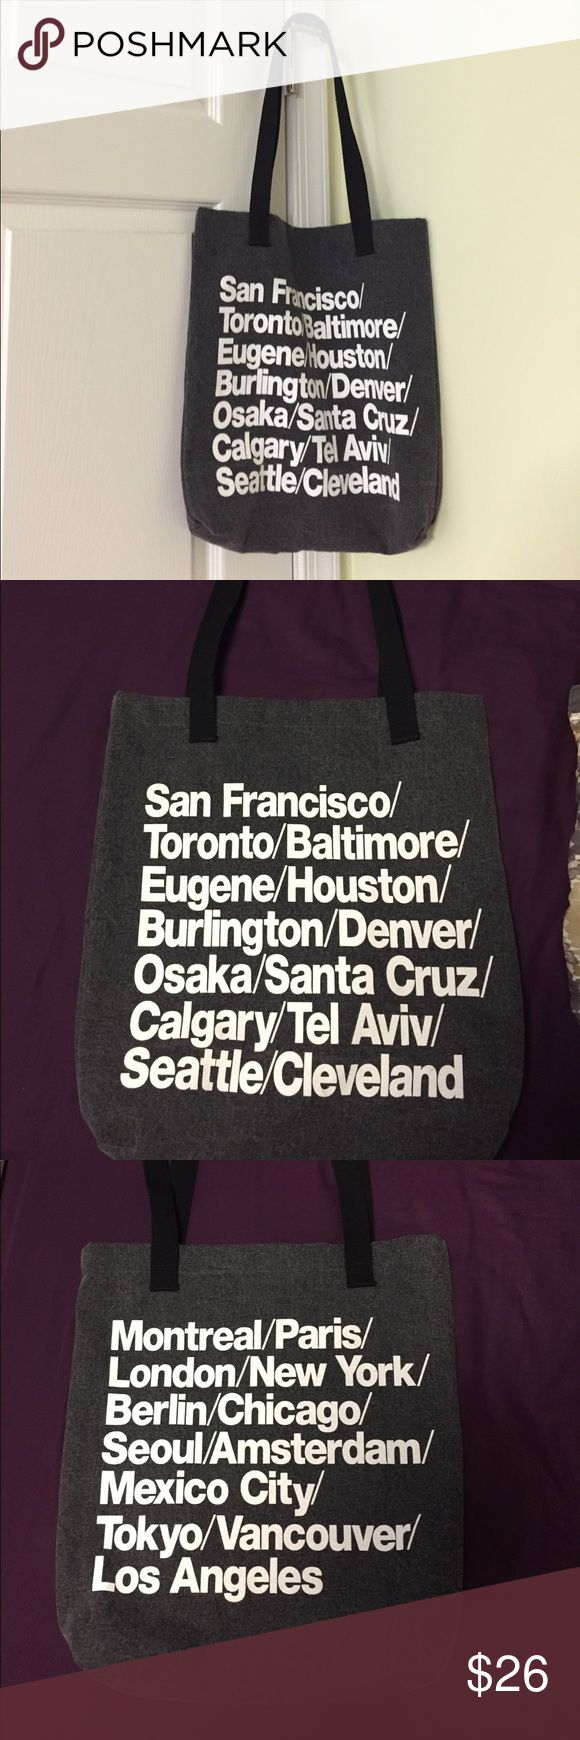 American Apparel tote bag with city names on it Small American apparel tote bag with city makes listed on it American Apparel Bags Totes